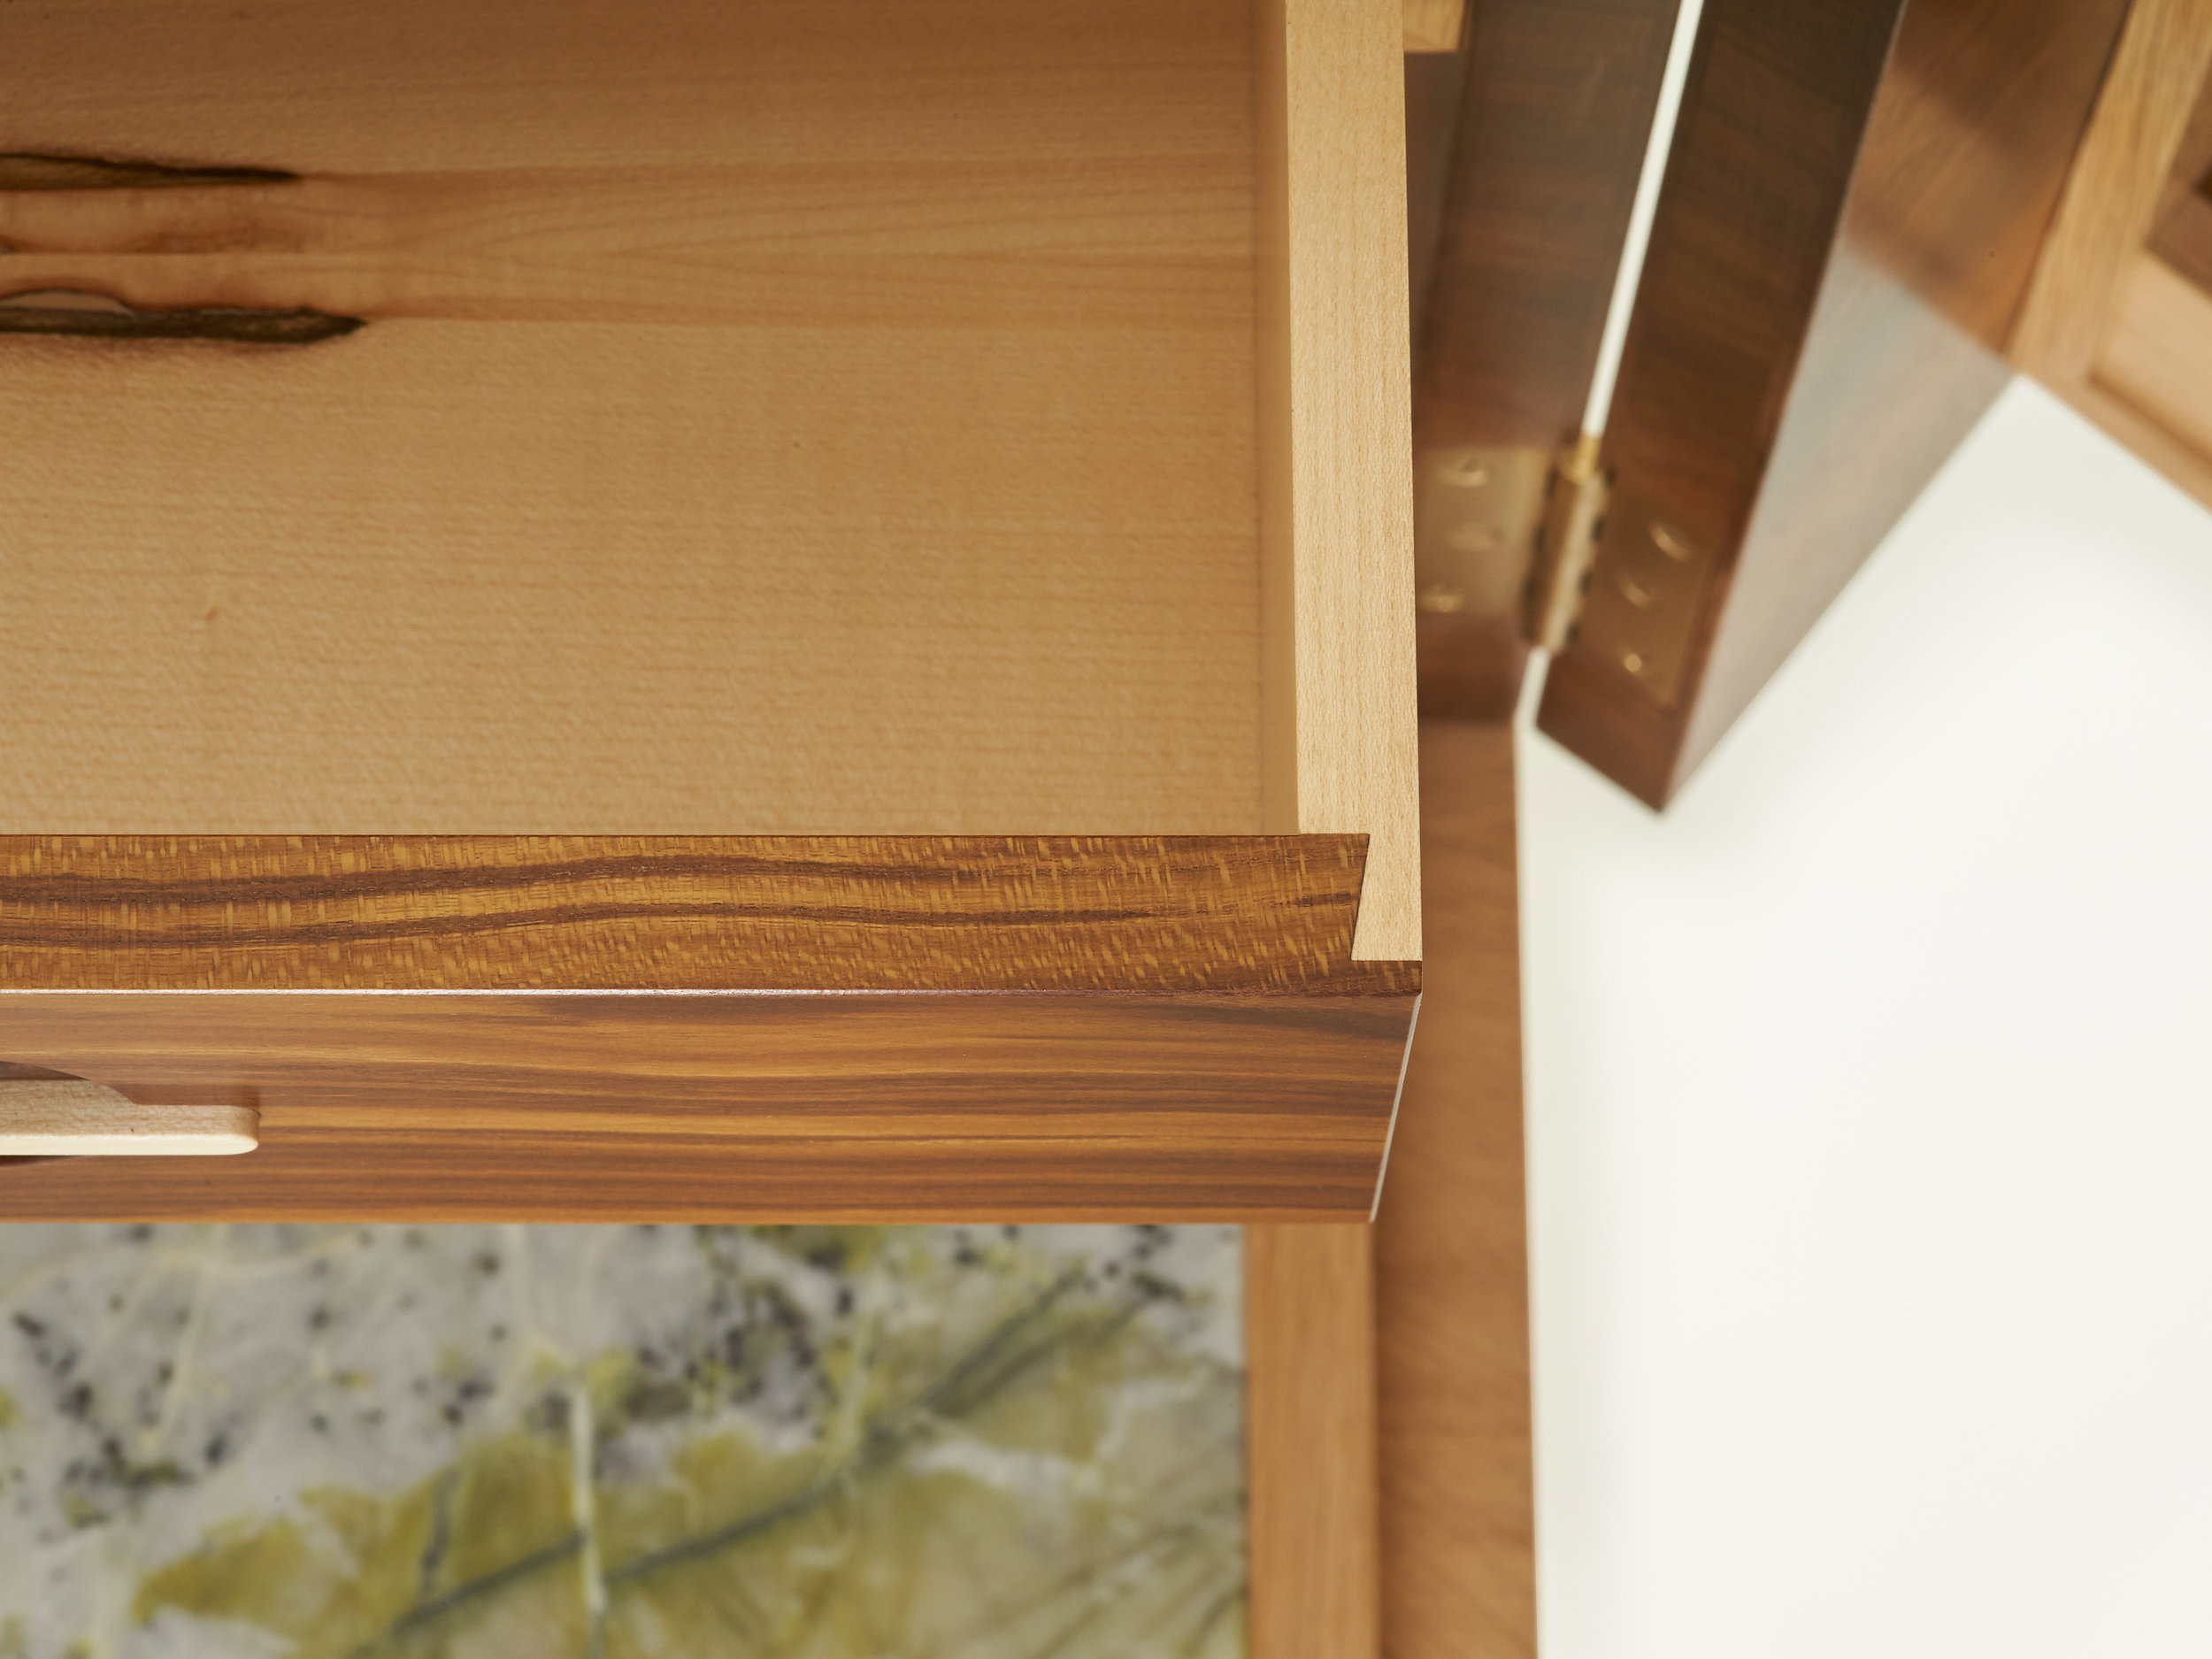 Whisky cabinet detail